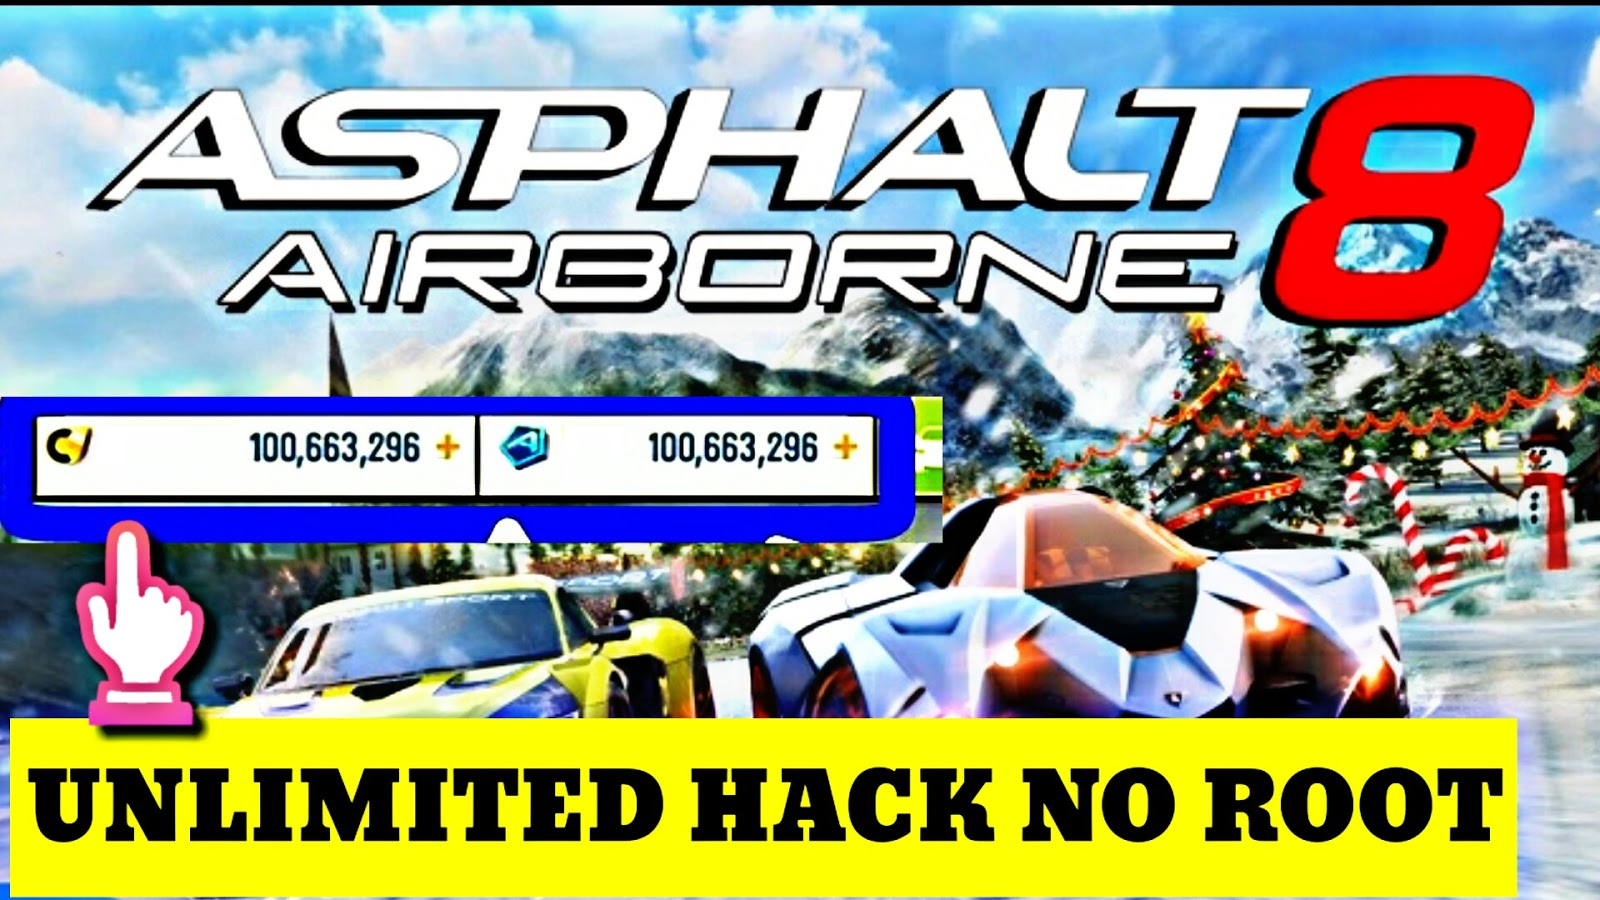 【DWNLDS.CO AE9276A ASPHALT8 ASPHALT 8】 Credits and Tokens FOR ANDROID IOS PC PLAYSTATION | 100% WORKING METHOD | GET UNLIMITED RESOURCES NOW